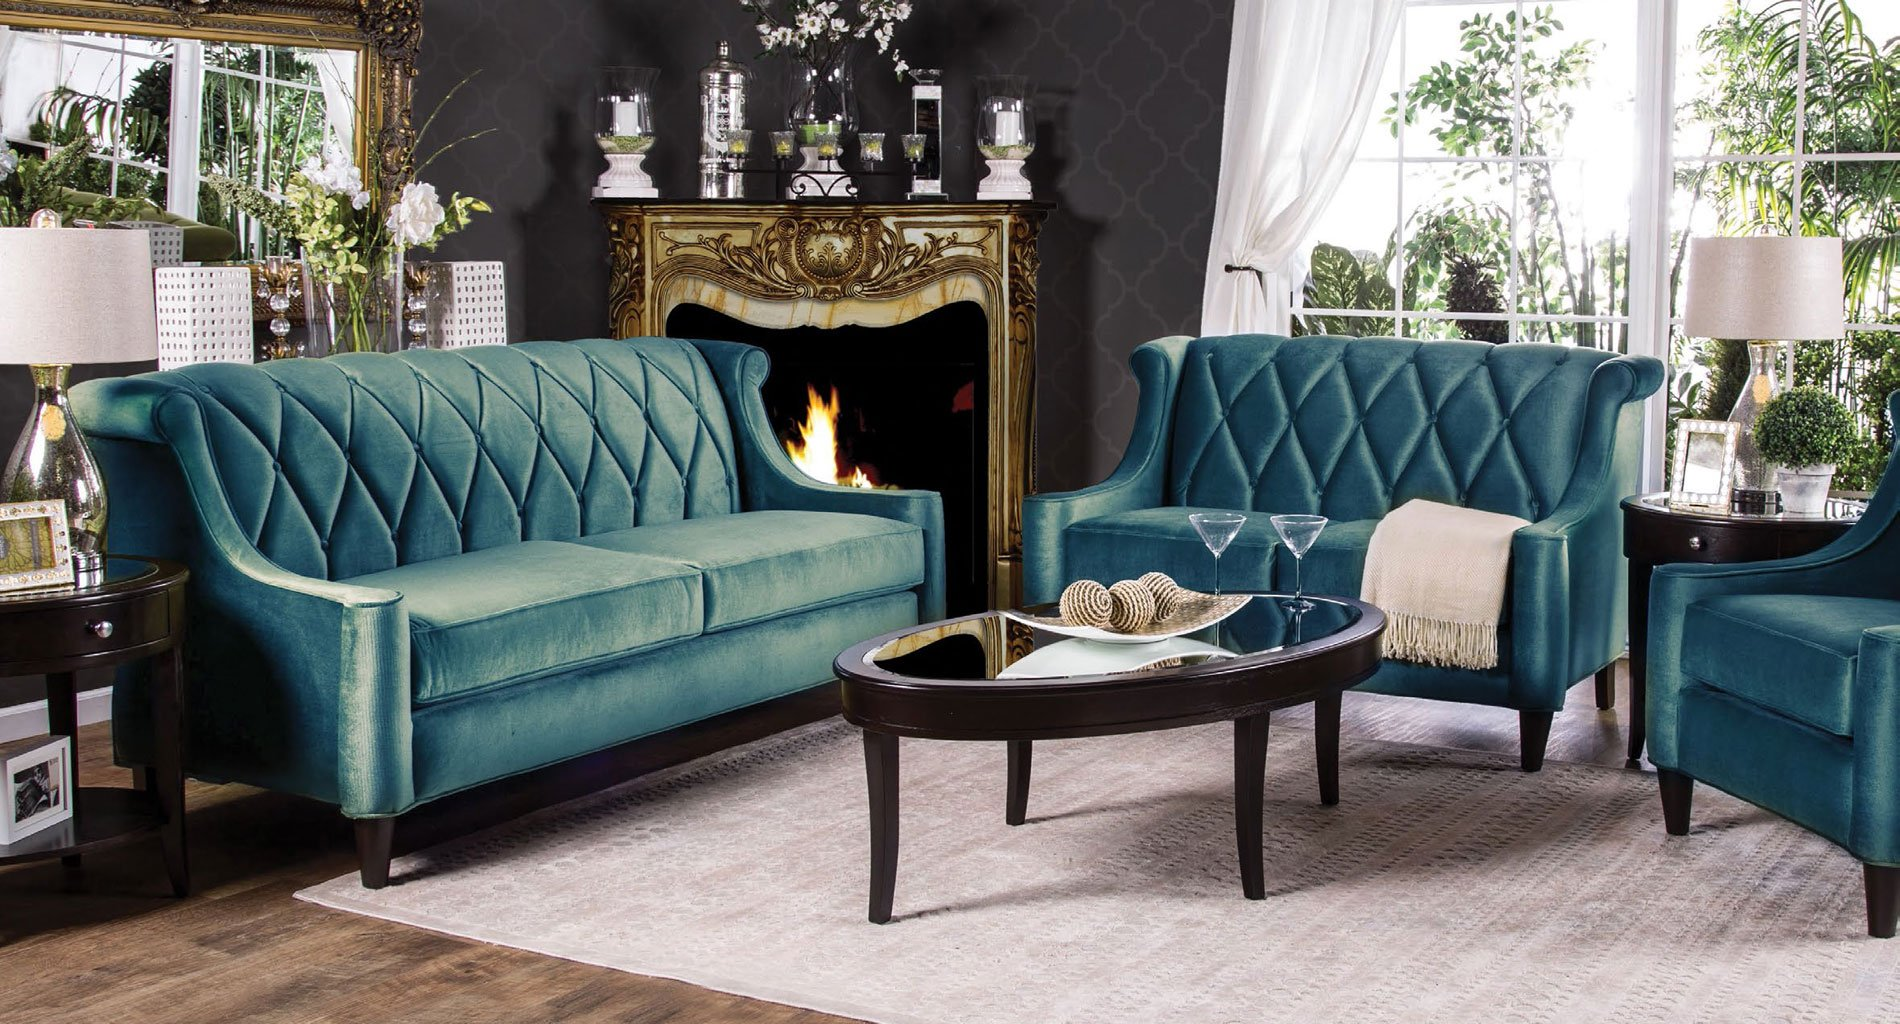 Limerick Living Room Set Dark Teal